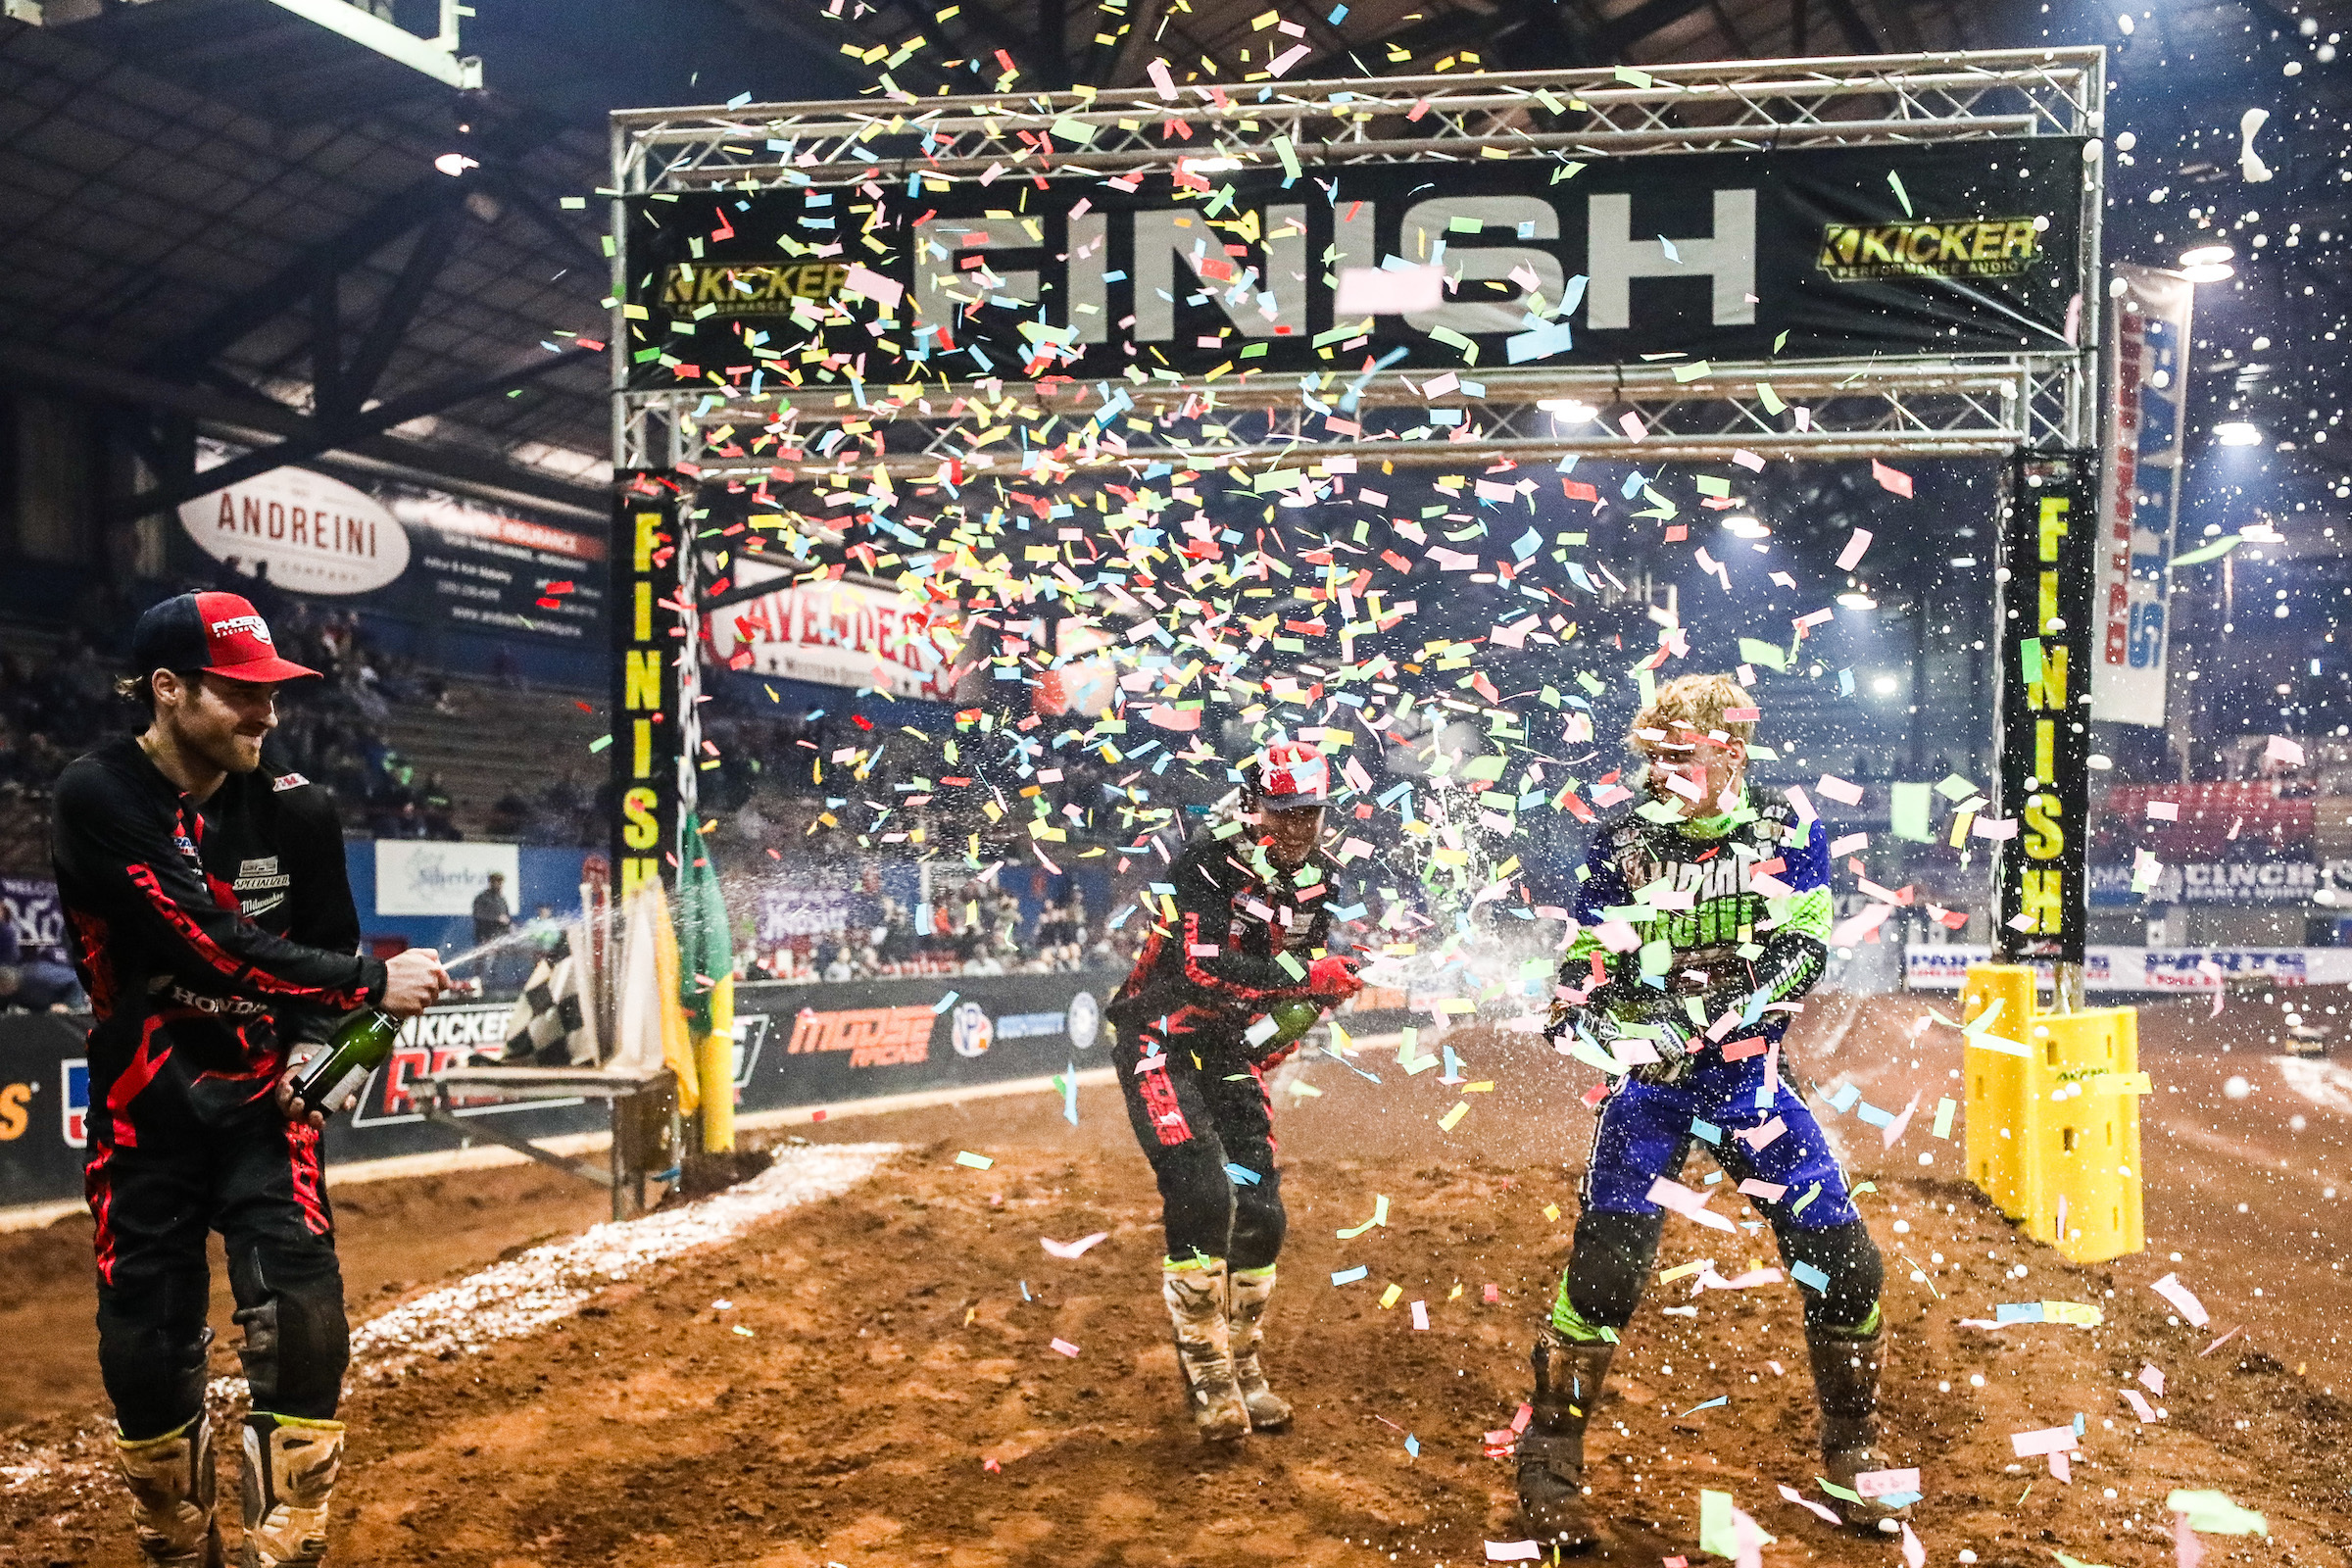 From the left, Jace Owen, Kyle Peters, and Dustin Winter celebrate making the podium in the 450 Pro Main in Round 5. (Photo- Jack Jaxson)